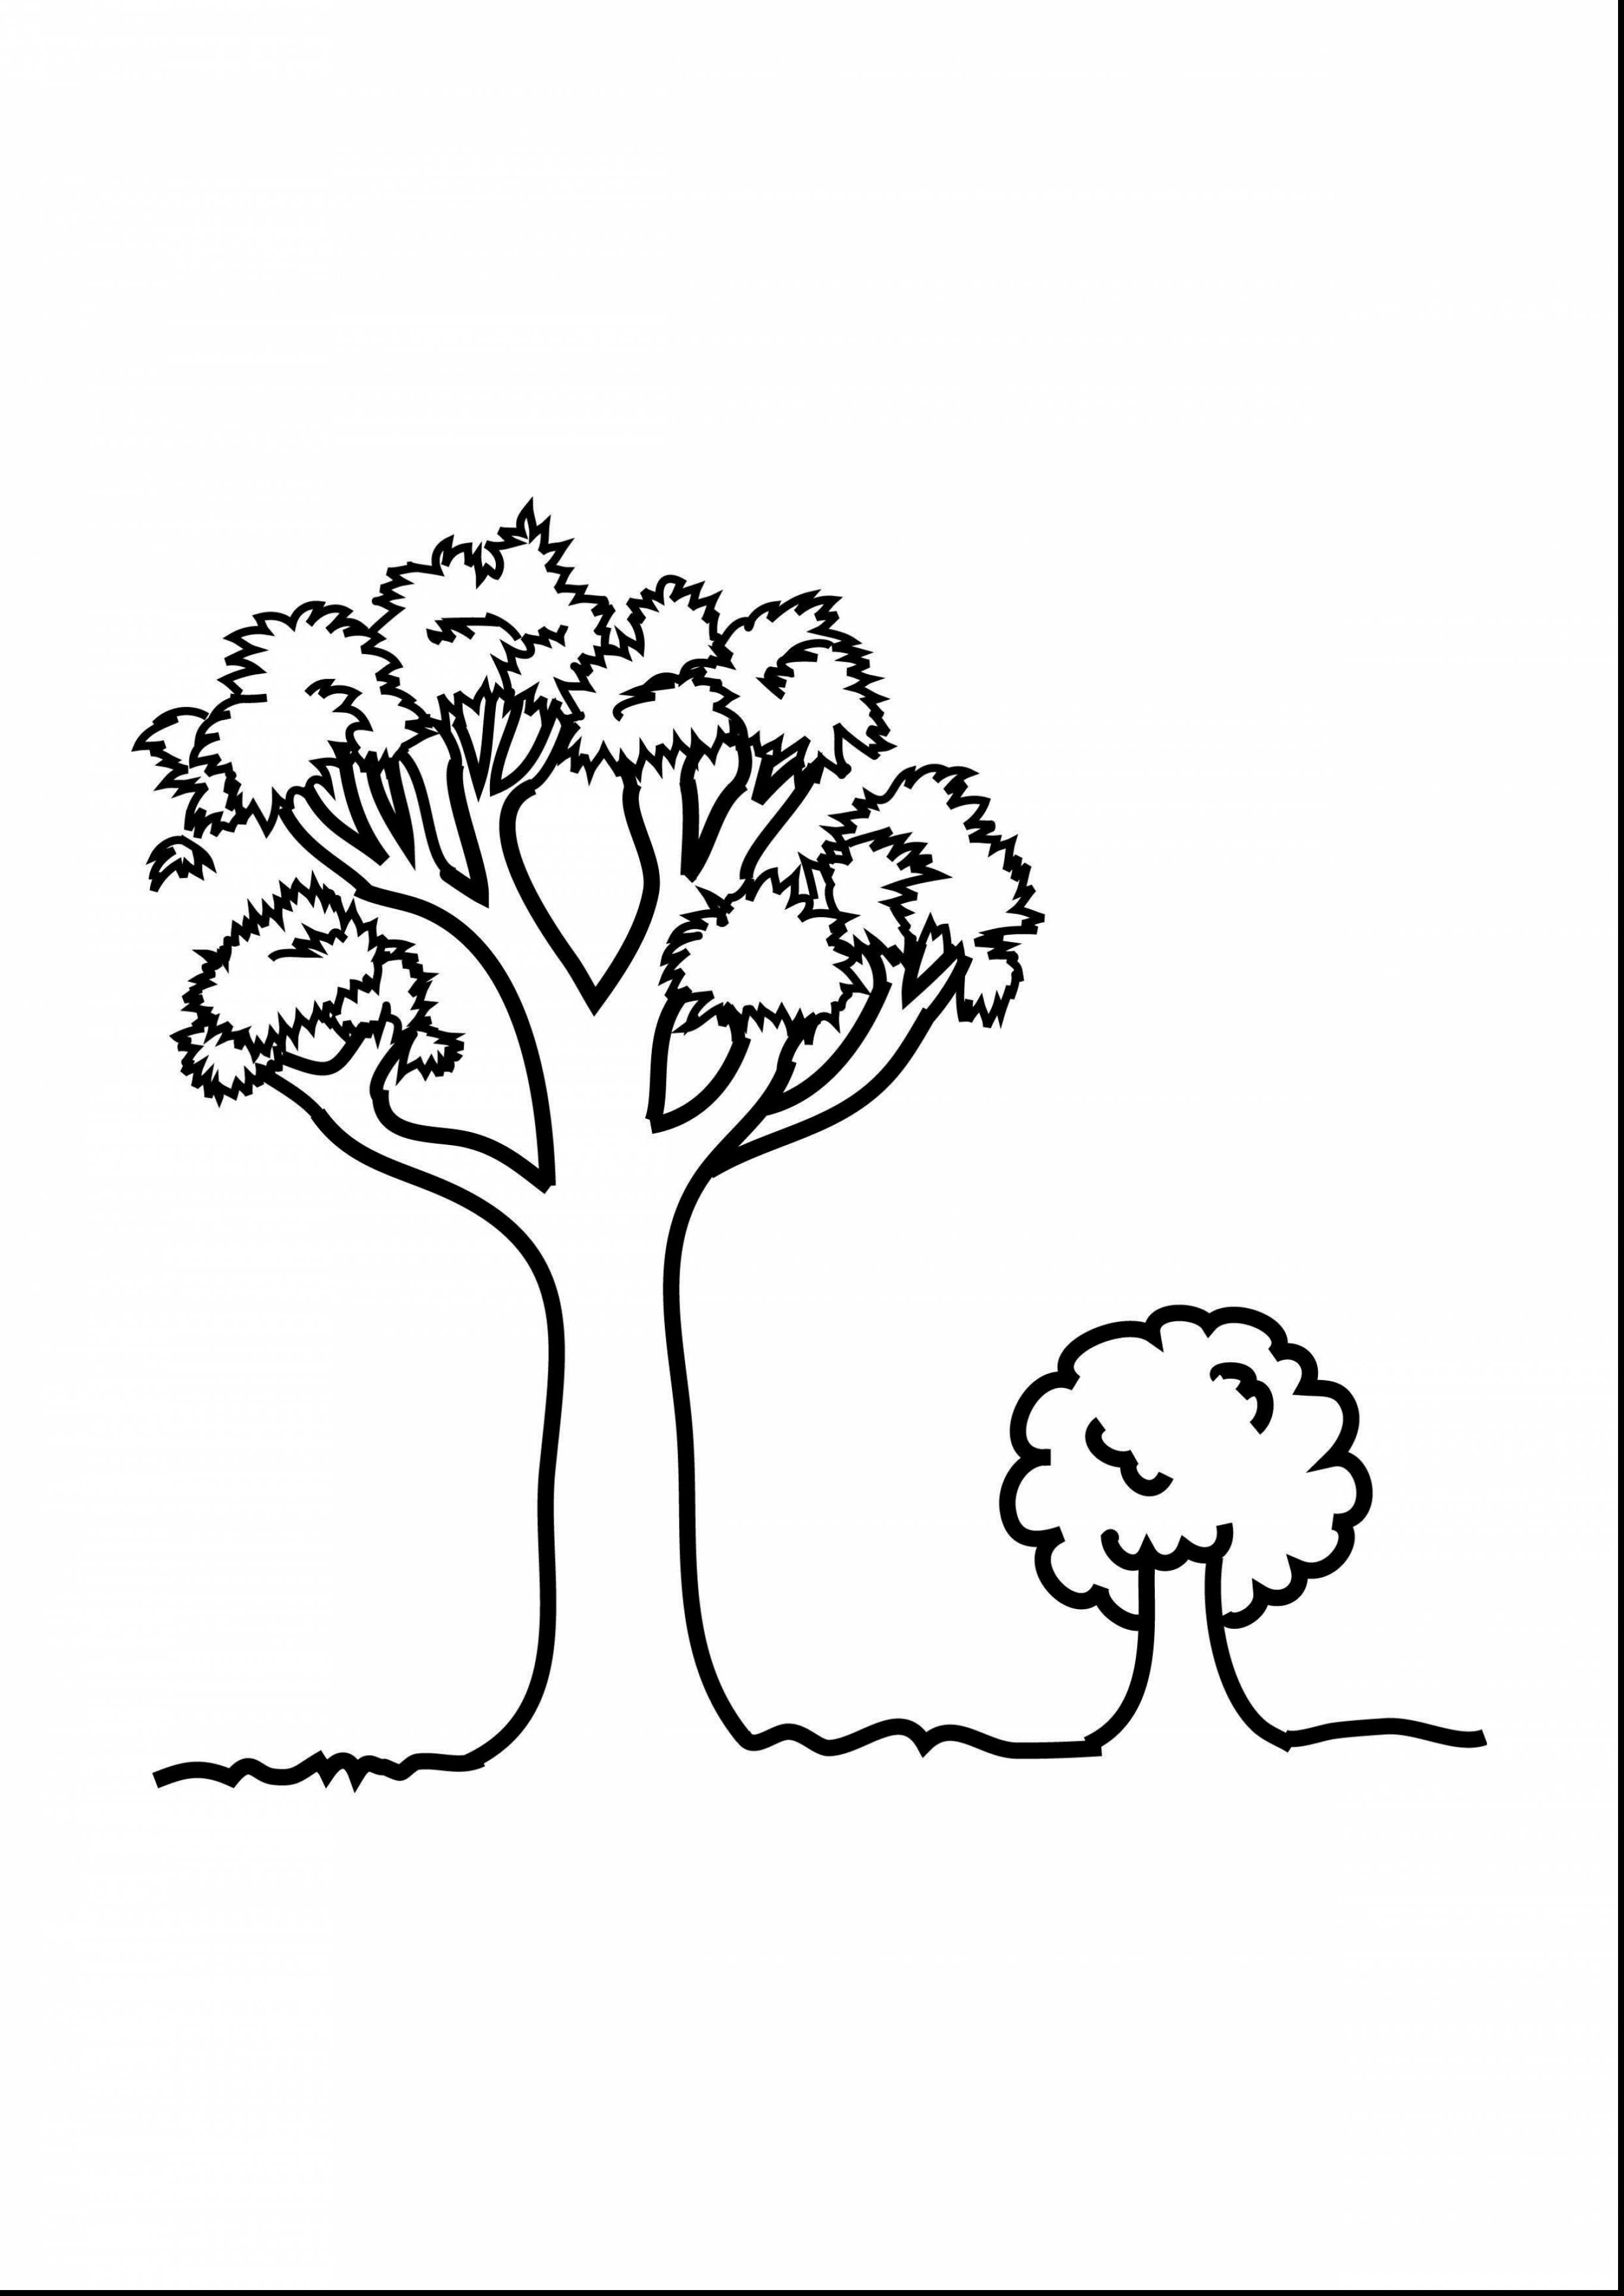 Big Tree Clipart Black And White.